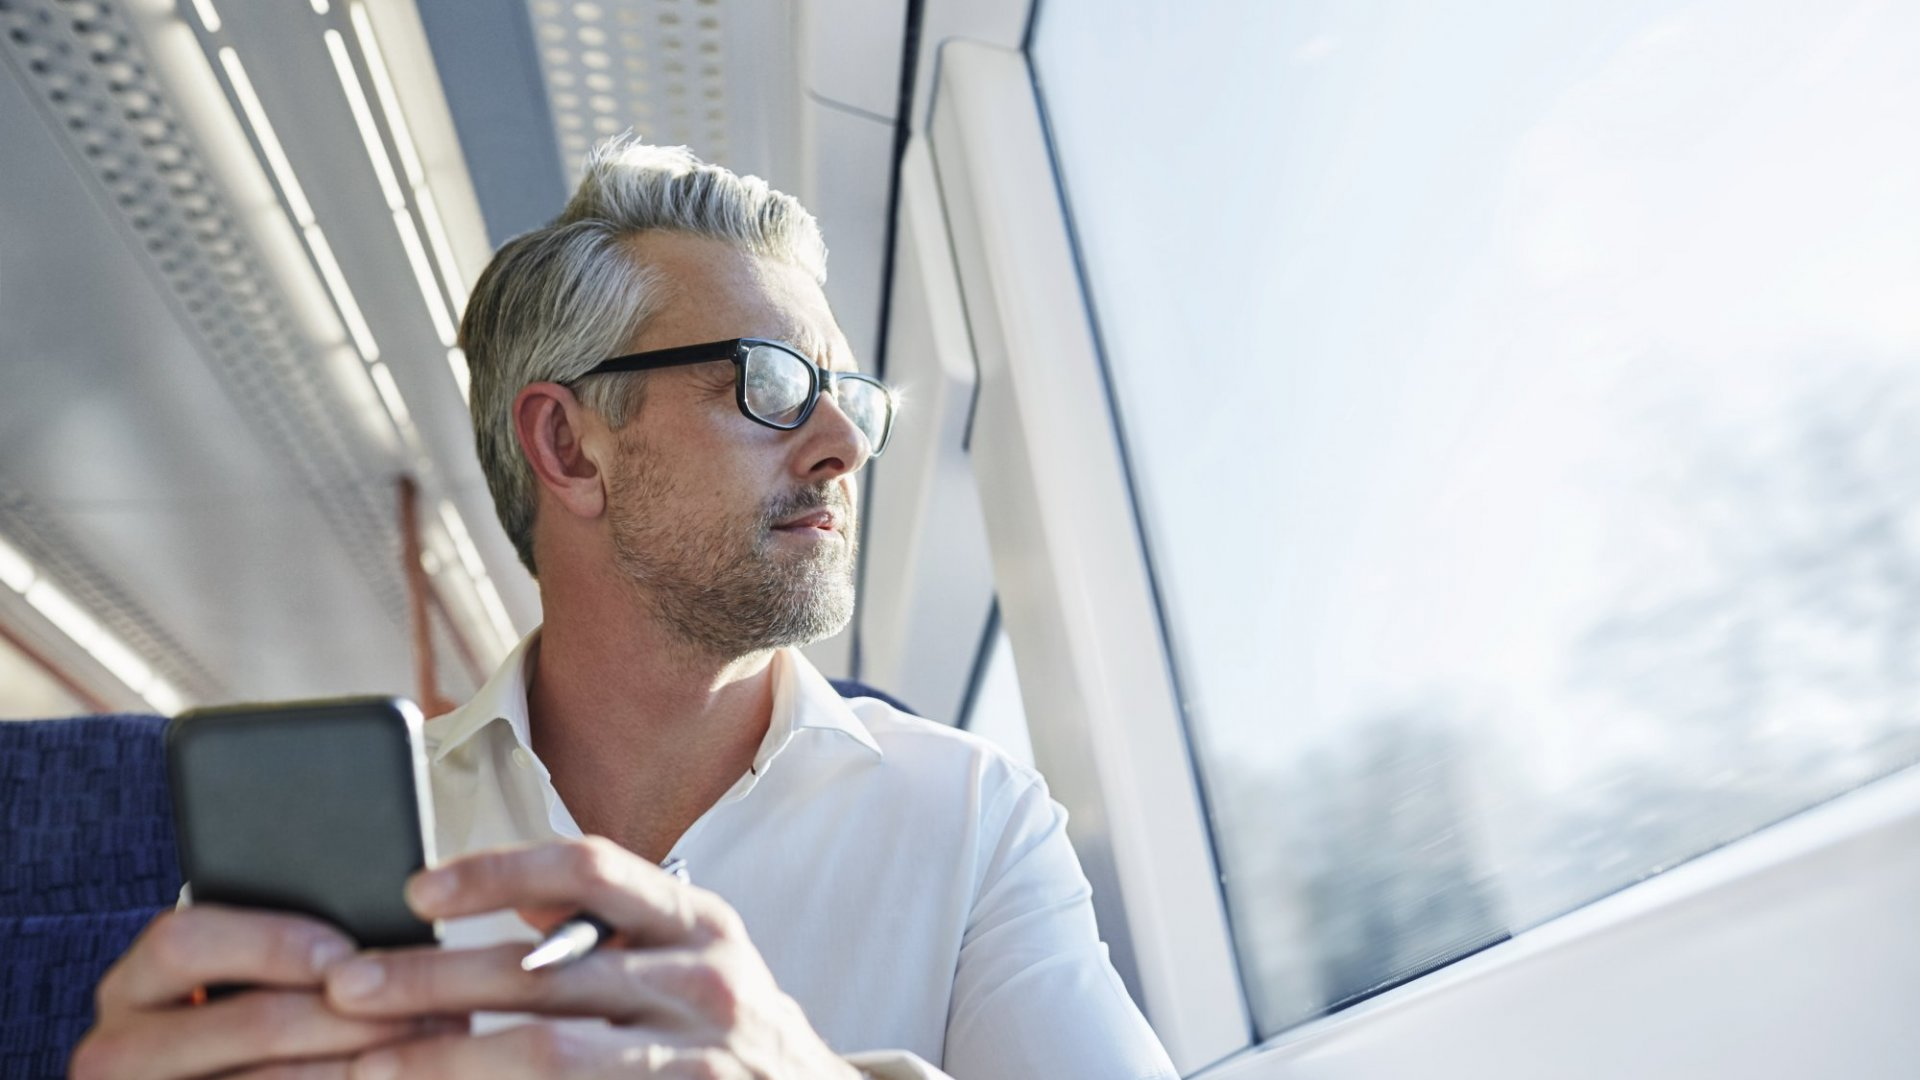 4 Tips to Make Your Commute the Most Productive Part of Your Day